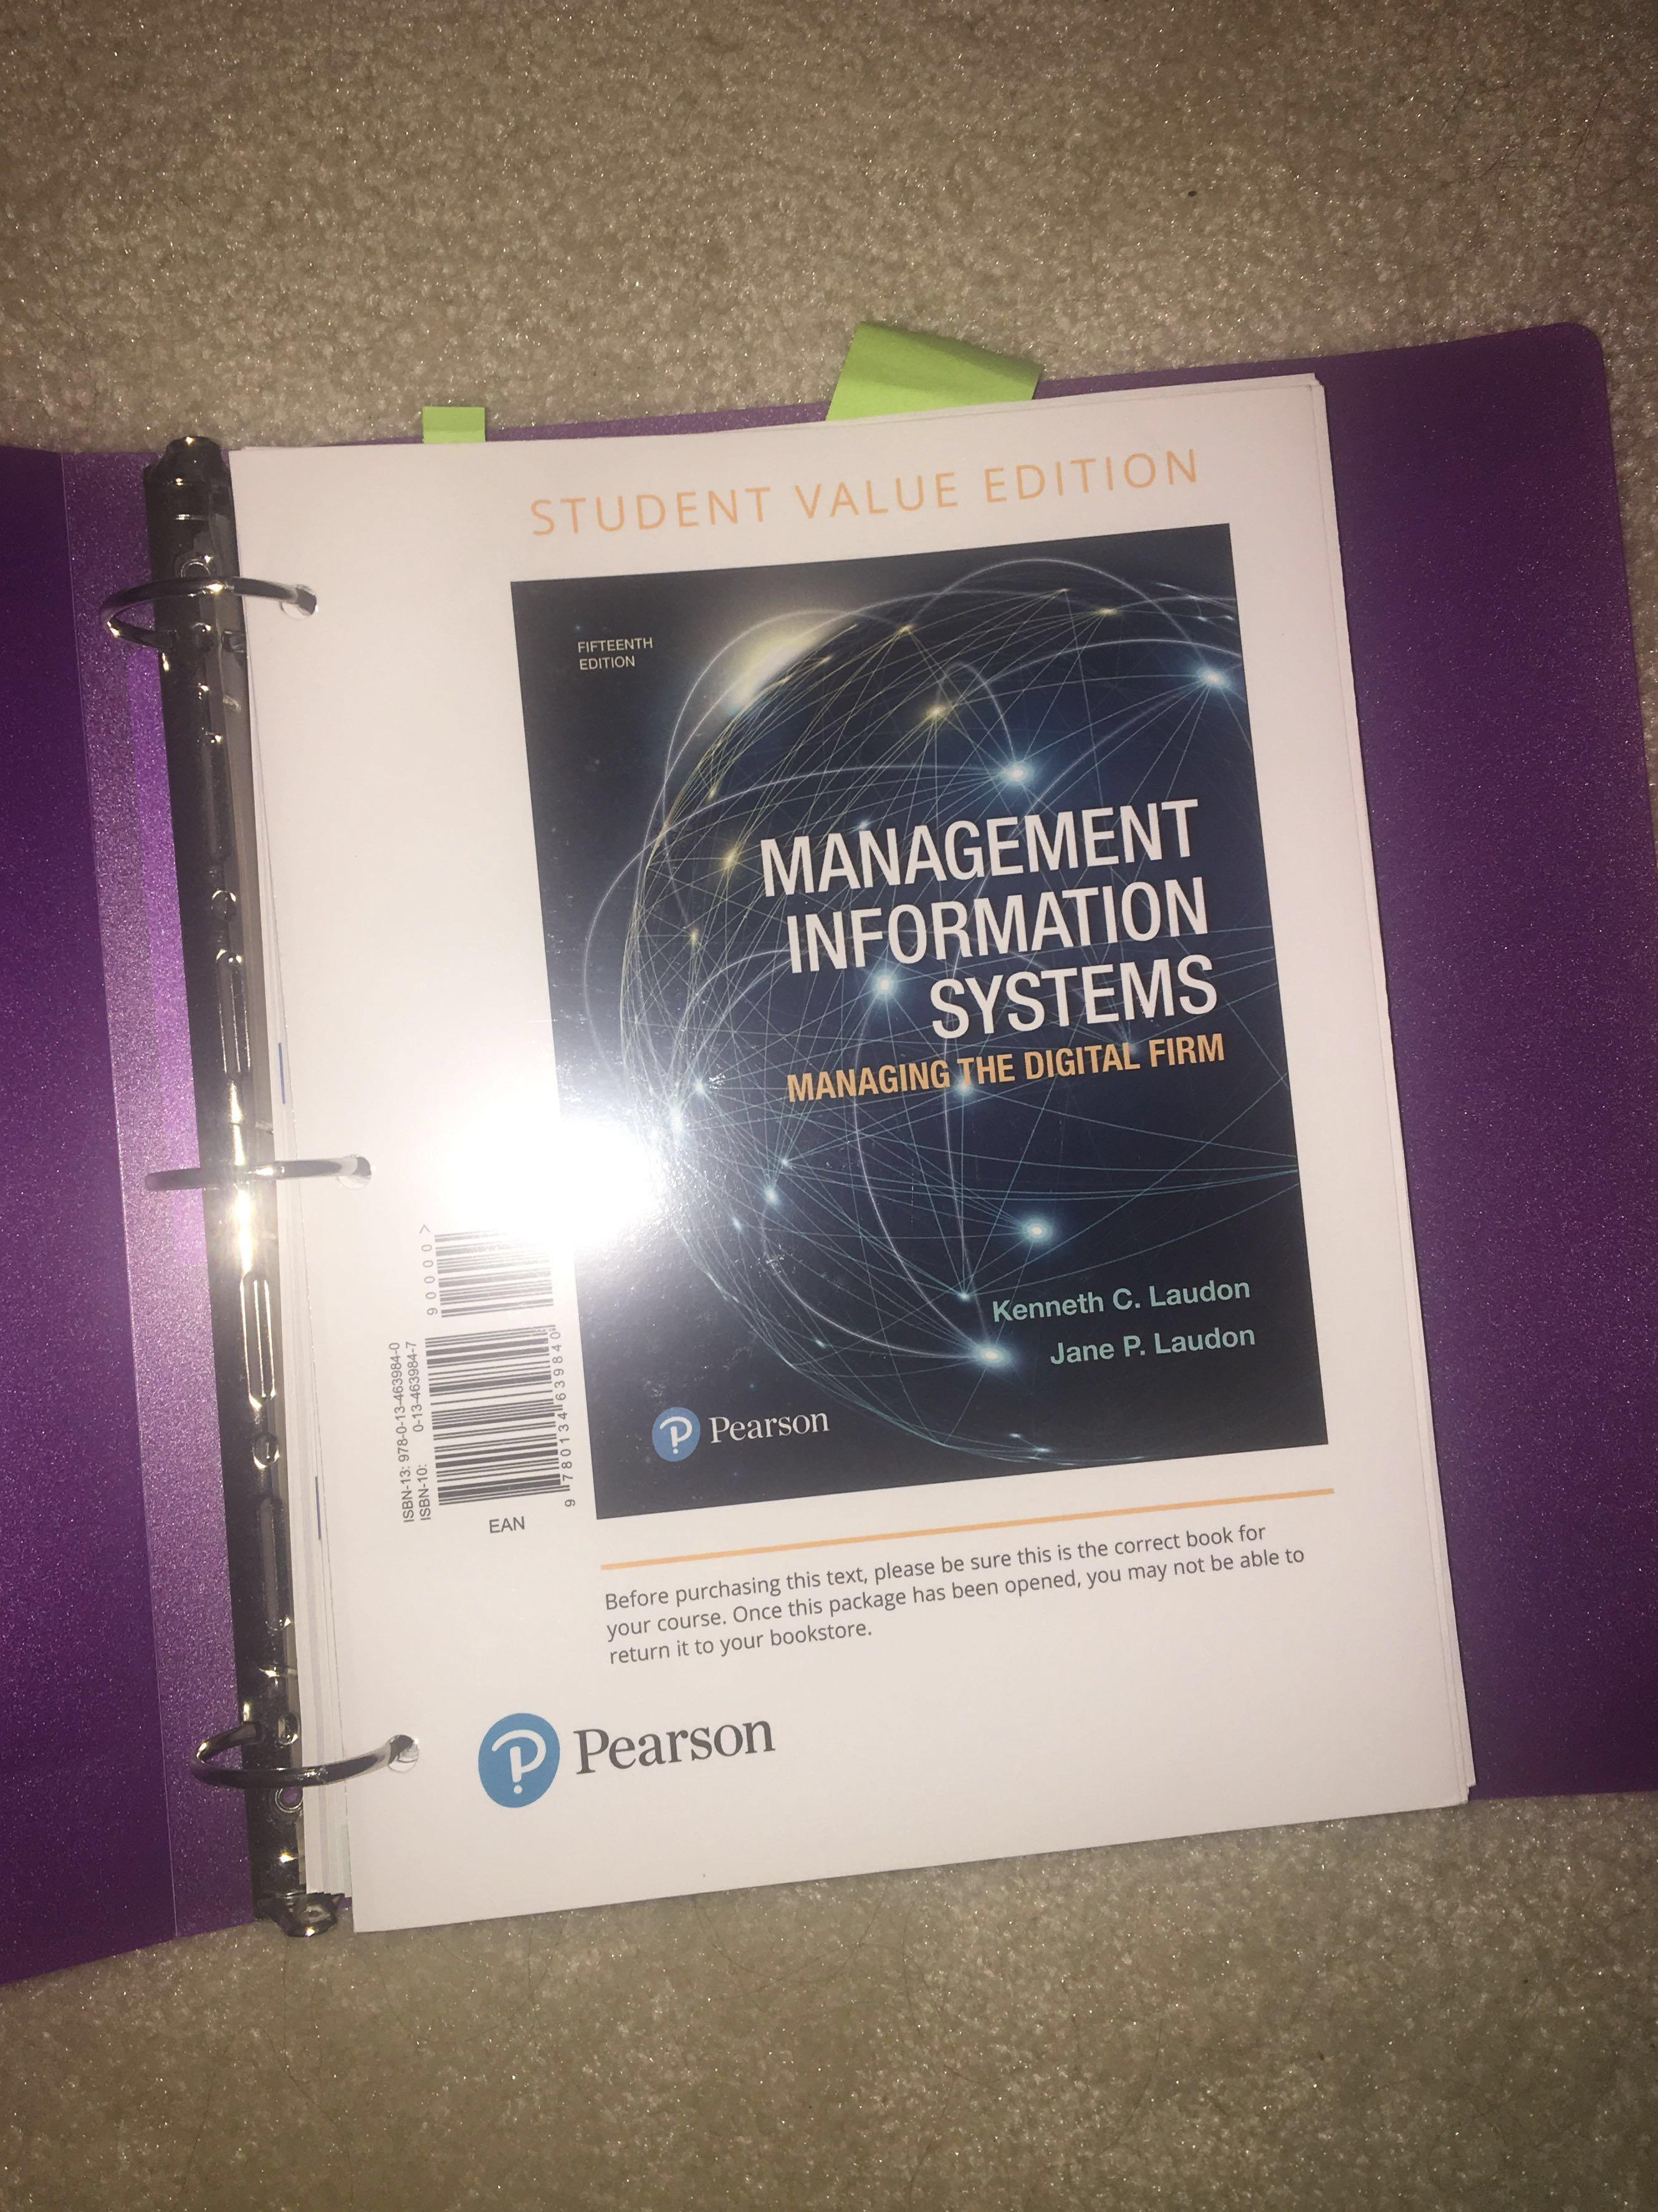 ITM 100 or 102 MANAGEMENT INFORMATION SYSTEMS